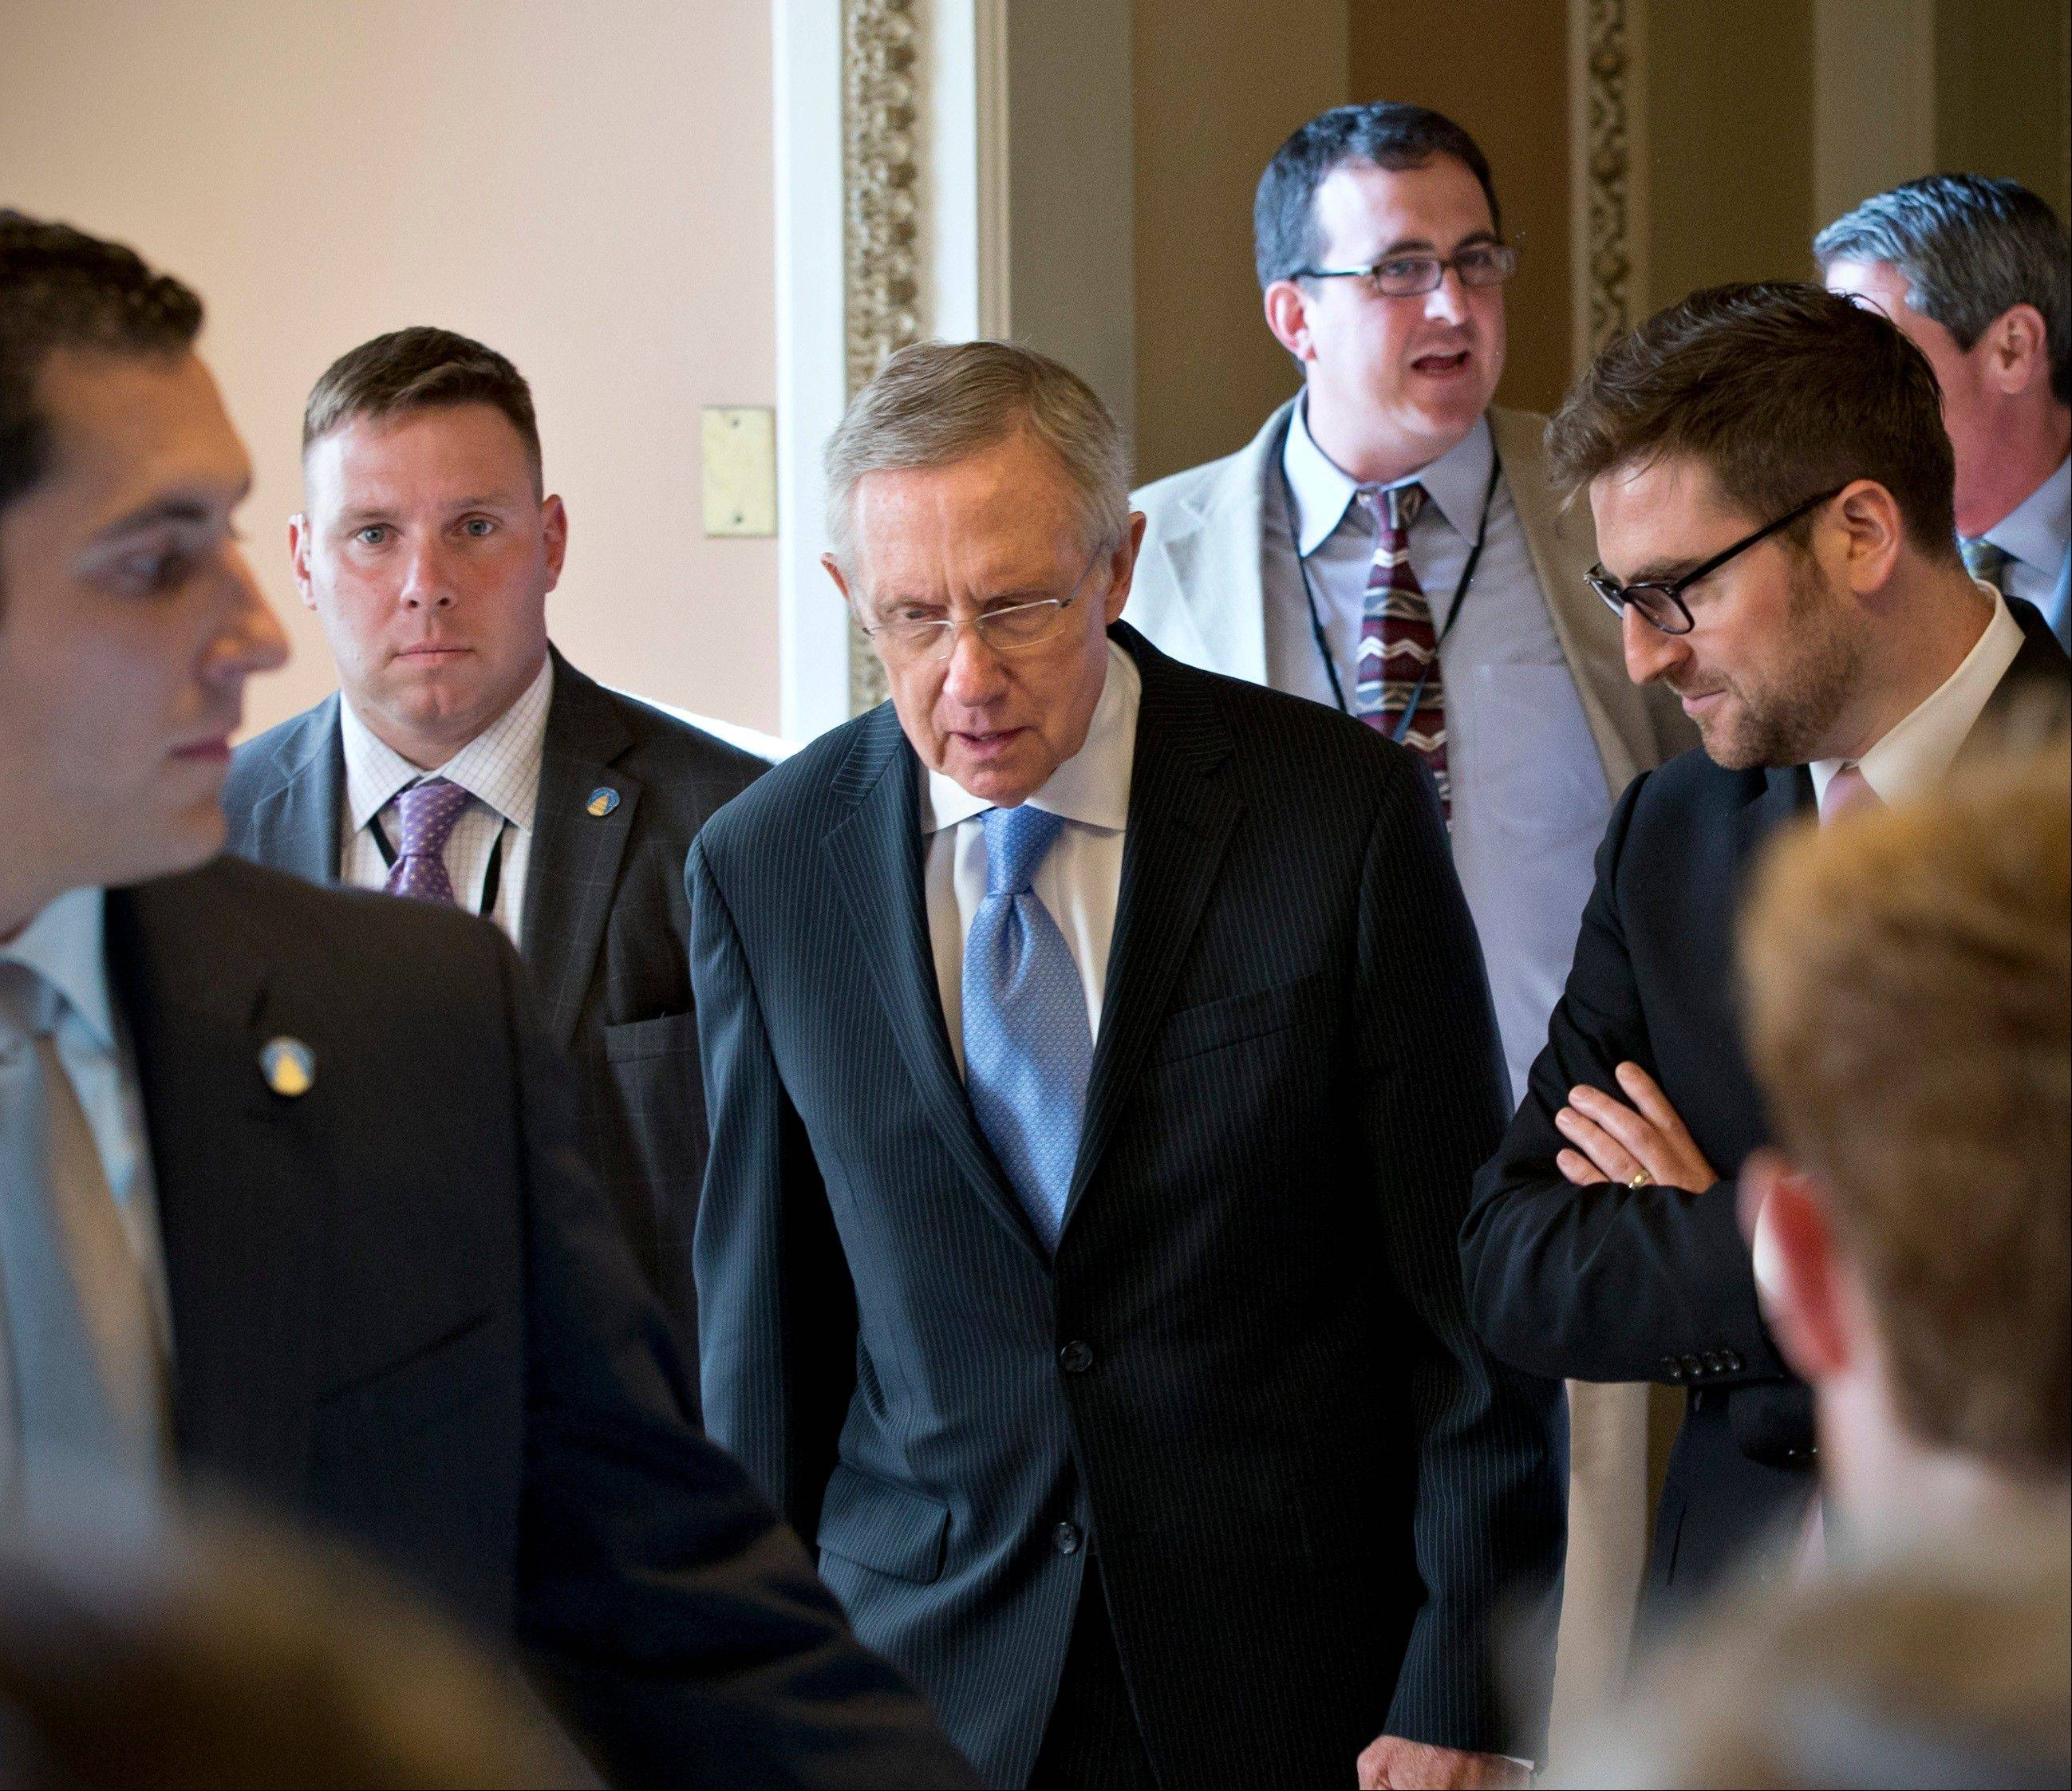 Threats by Senate Majority Leader Harry Reid to change the Senate's long-standing filibuster rules apparently succeeded in winning a concession from Republicans, who appear willing to vote on several White House appointments.